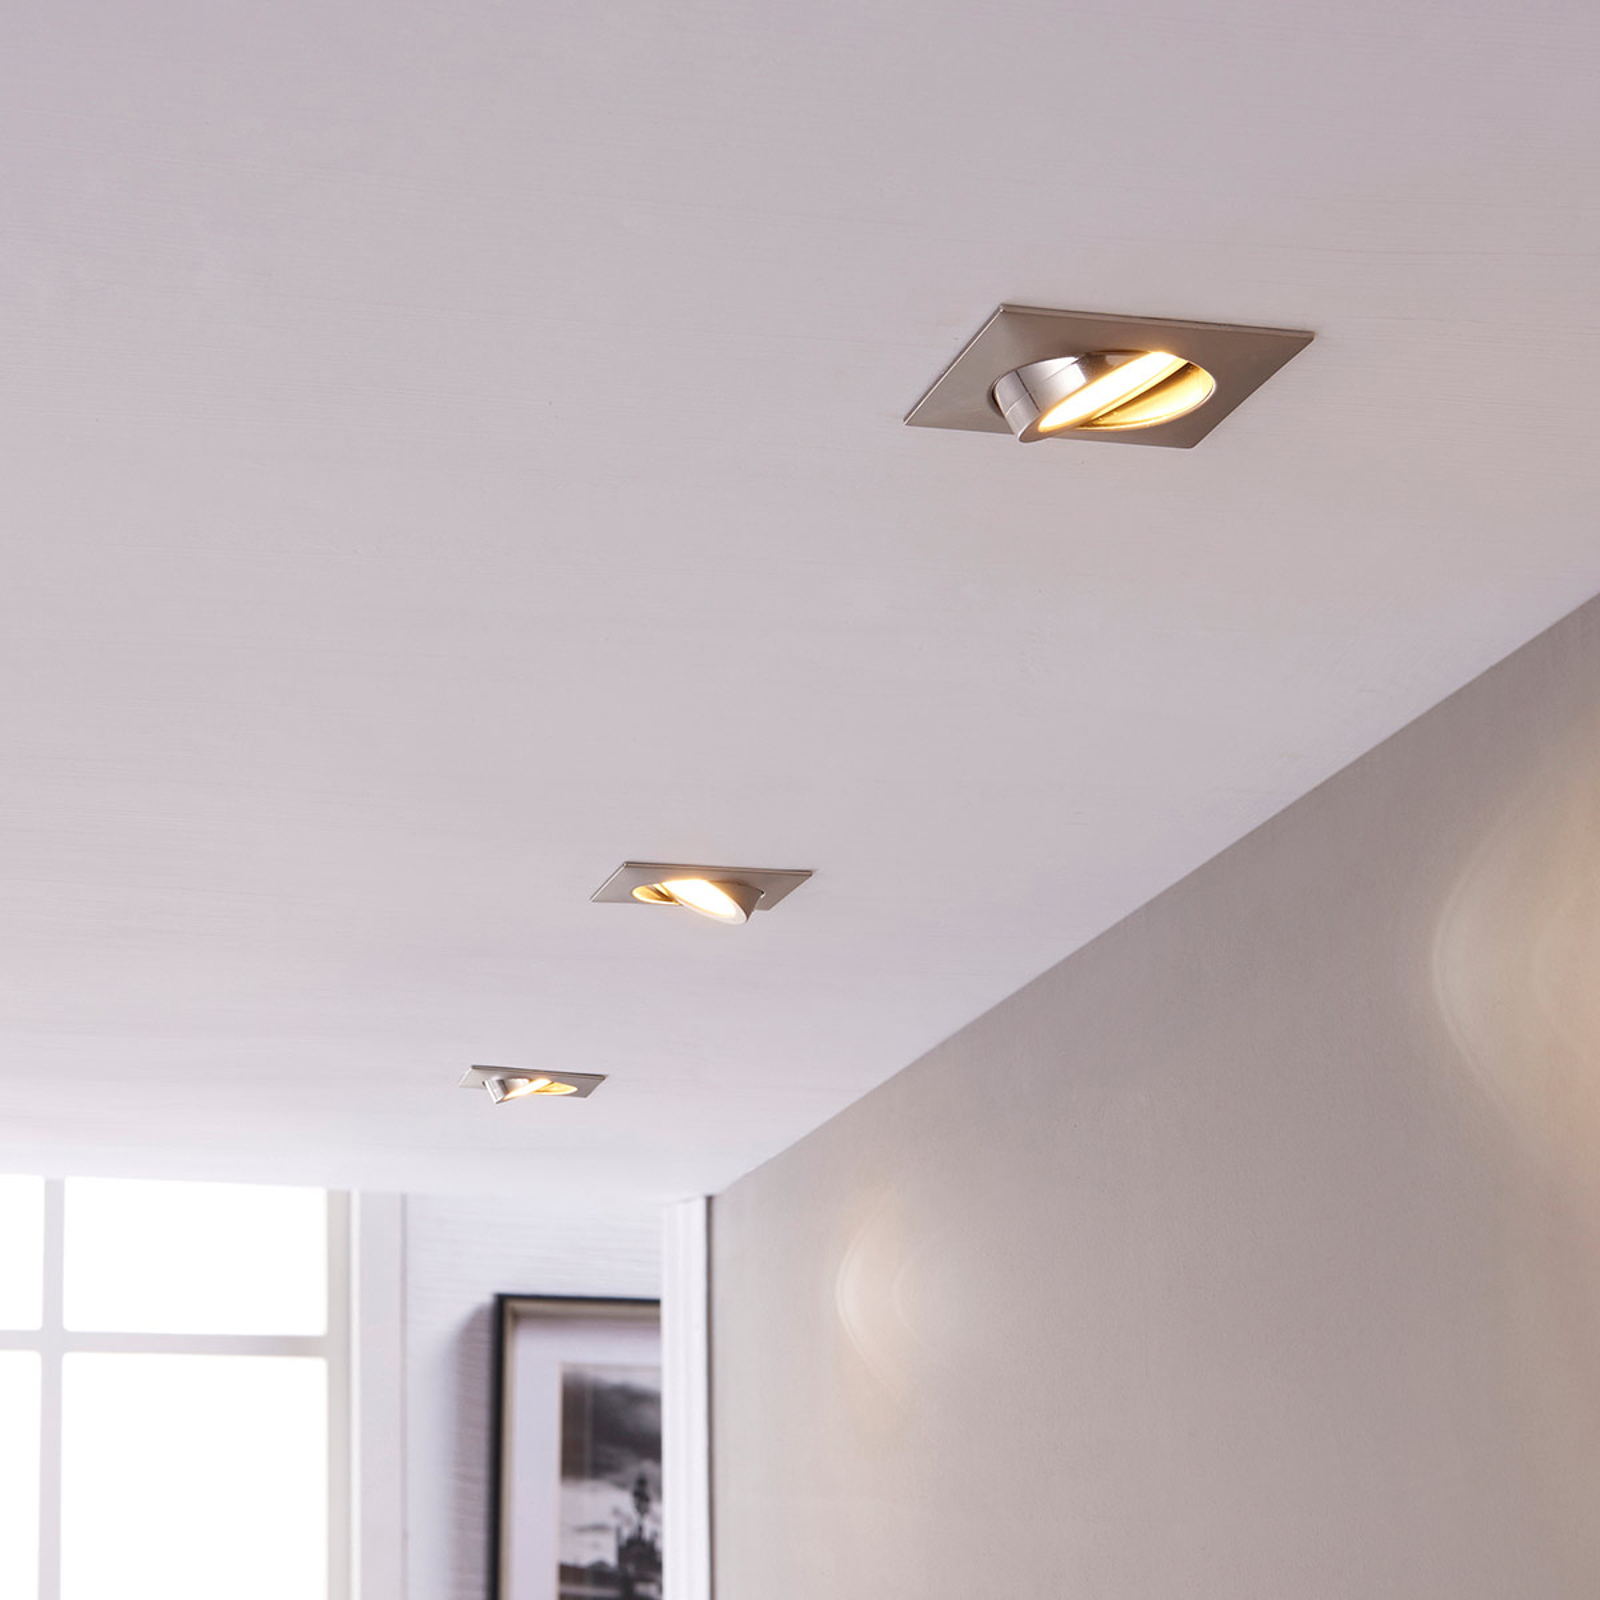 Spot encastré LED Andrej angulaire nickel lot de 3